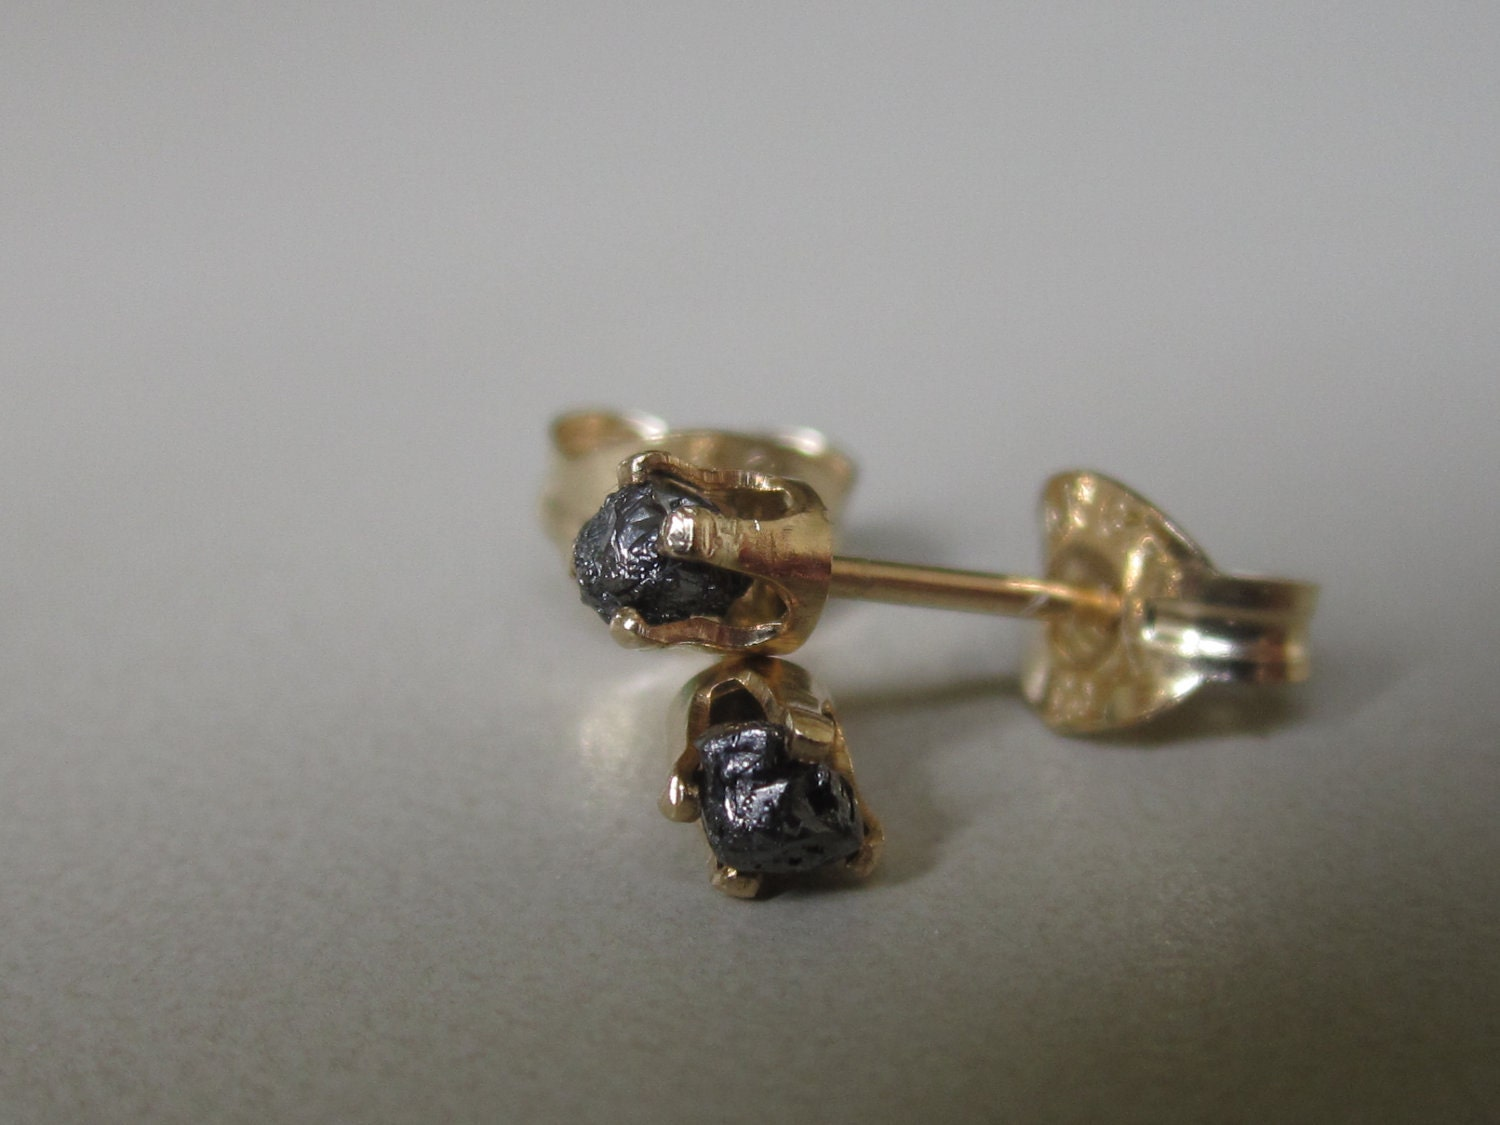 Rough diamond earrings, gold stud earrings, Rough diamond post earrings, 14k Gold filled post earrings